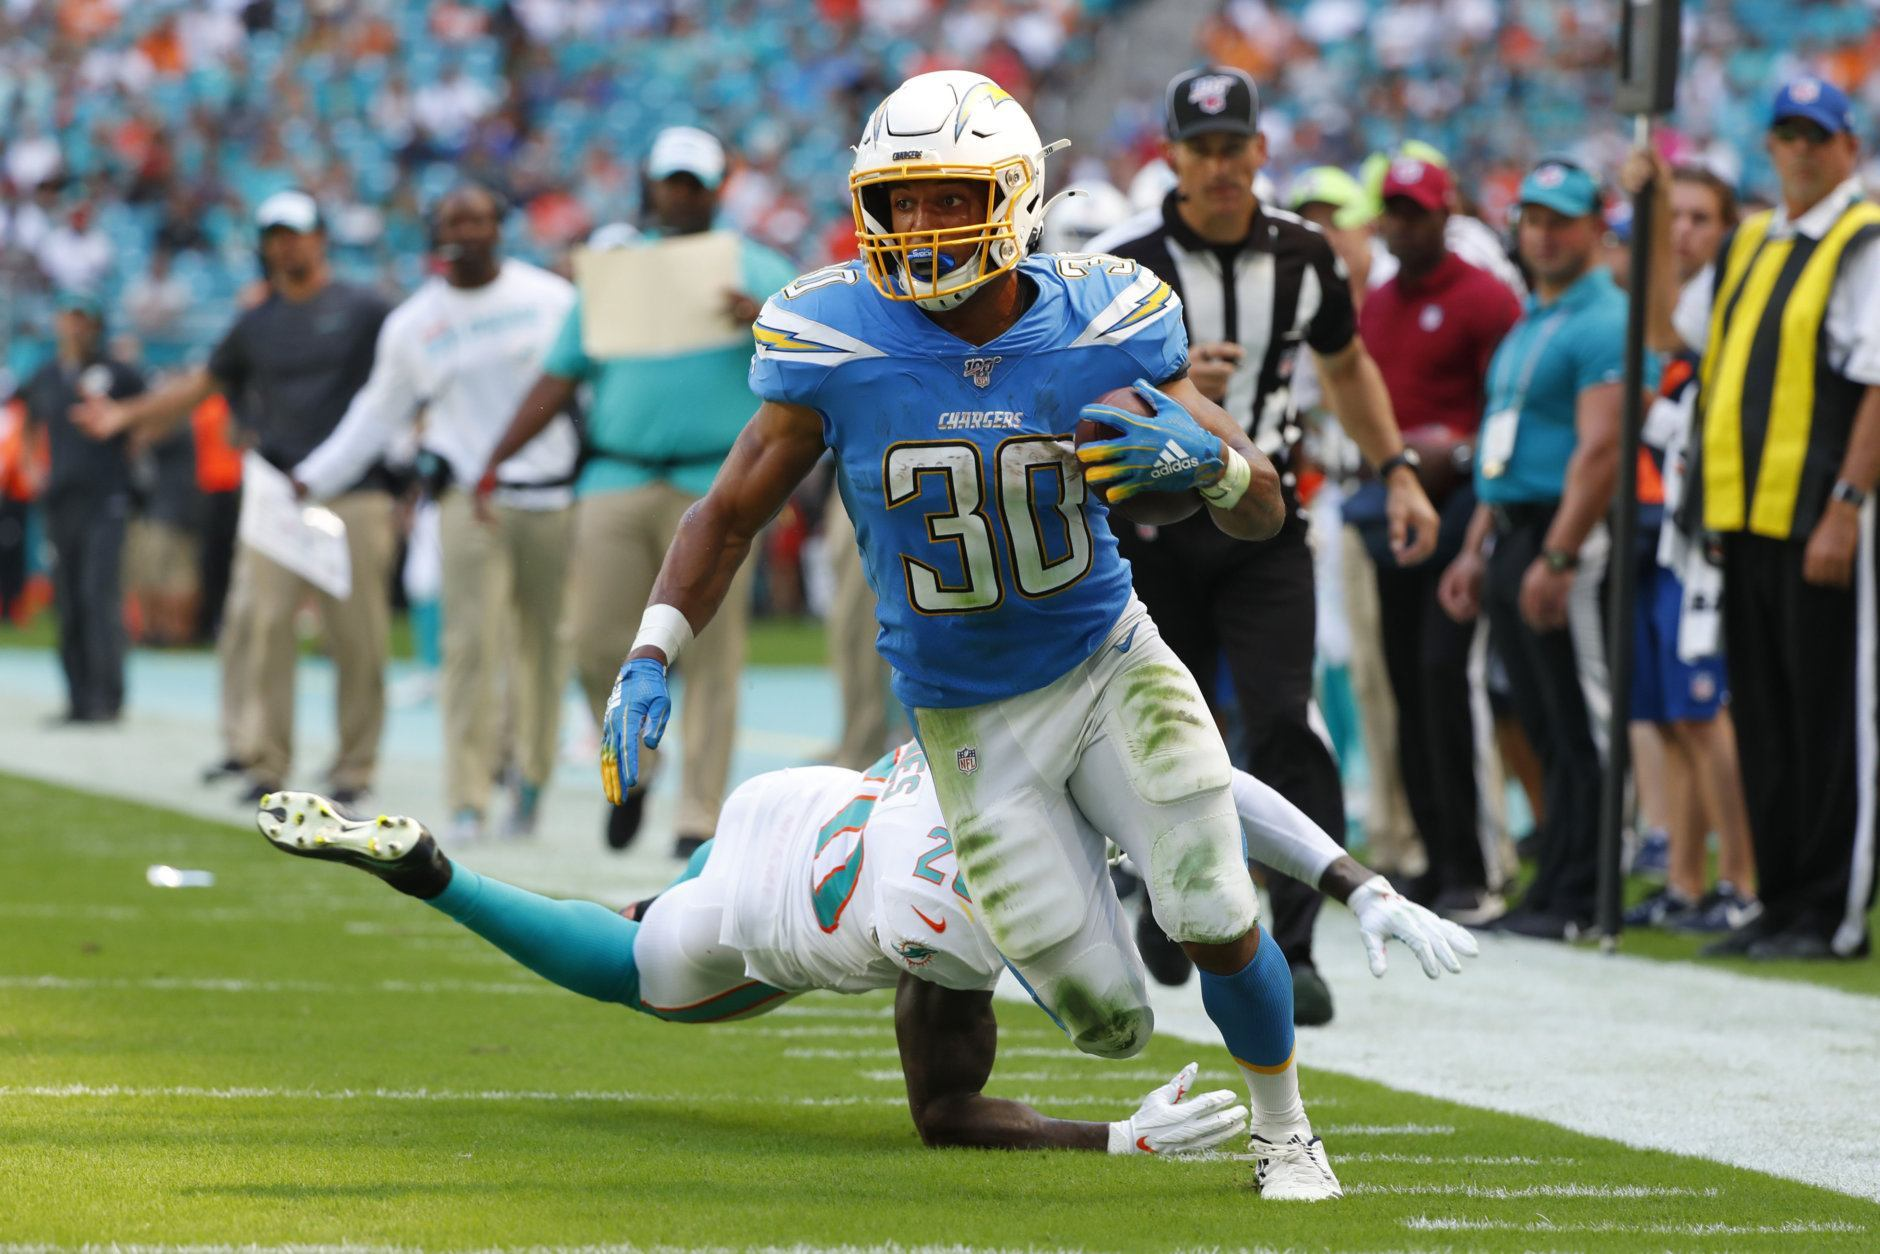 """<p><b><i>Chargers 30</i></b><br /> <b><i>Dolphins 10</i></b></p> <p>For those keeping score at home, Miami has been outscored 163-26 this season (the worst four-game point differential since at least 1940) and <a href=""""https://profootballtalk.nbcsports.com/2019/09/25/south-floridians-arent-watching-dolphins-games/"""">nobody in South Florida cares to watch</a> this obvious tank-job. The Chargers&#8217; first road win of the Dolphins since their<a href=""""https://www.youtube.com/watch?v=-SdBOT_FTio"""">iconic playoff matchup 37 years ago</a> was basically a gift.</p>"""